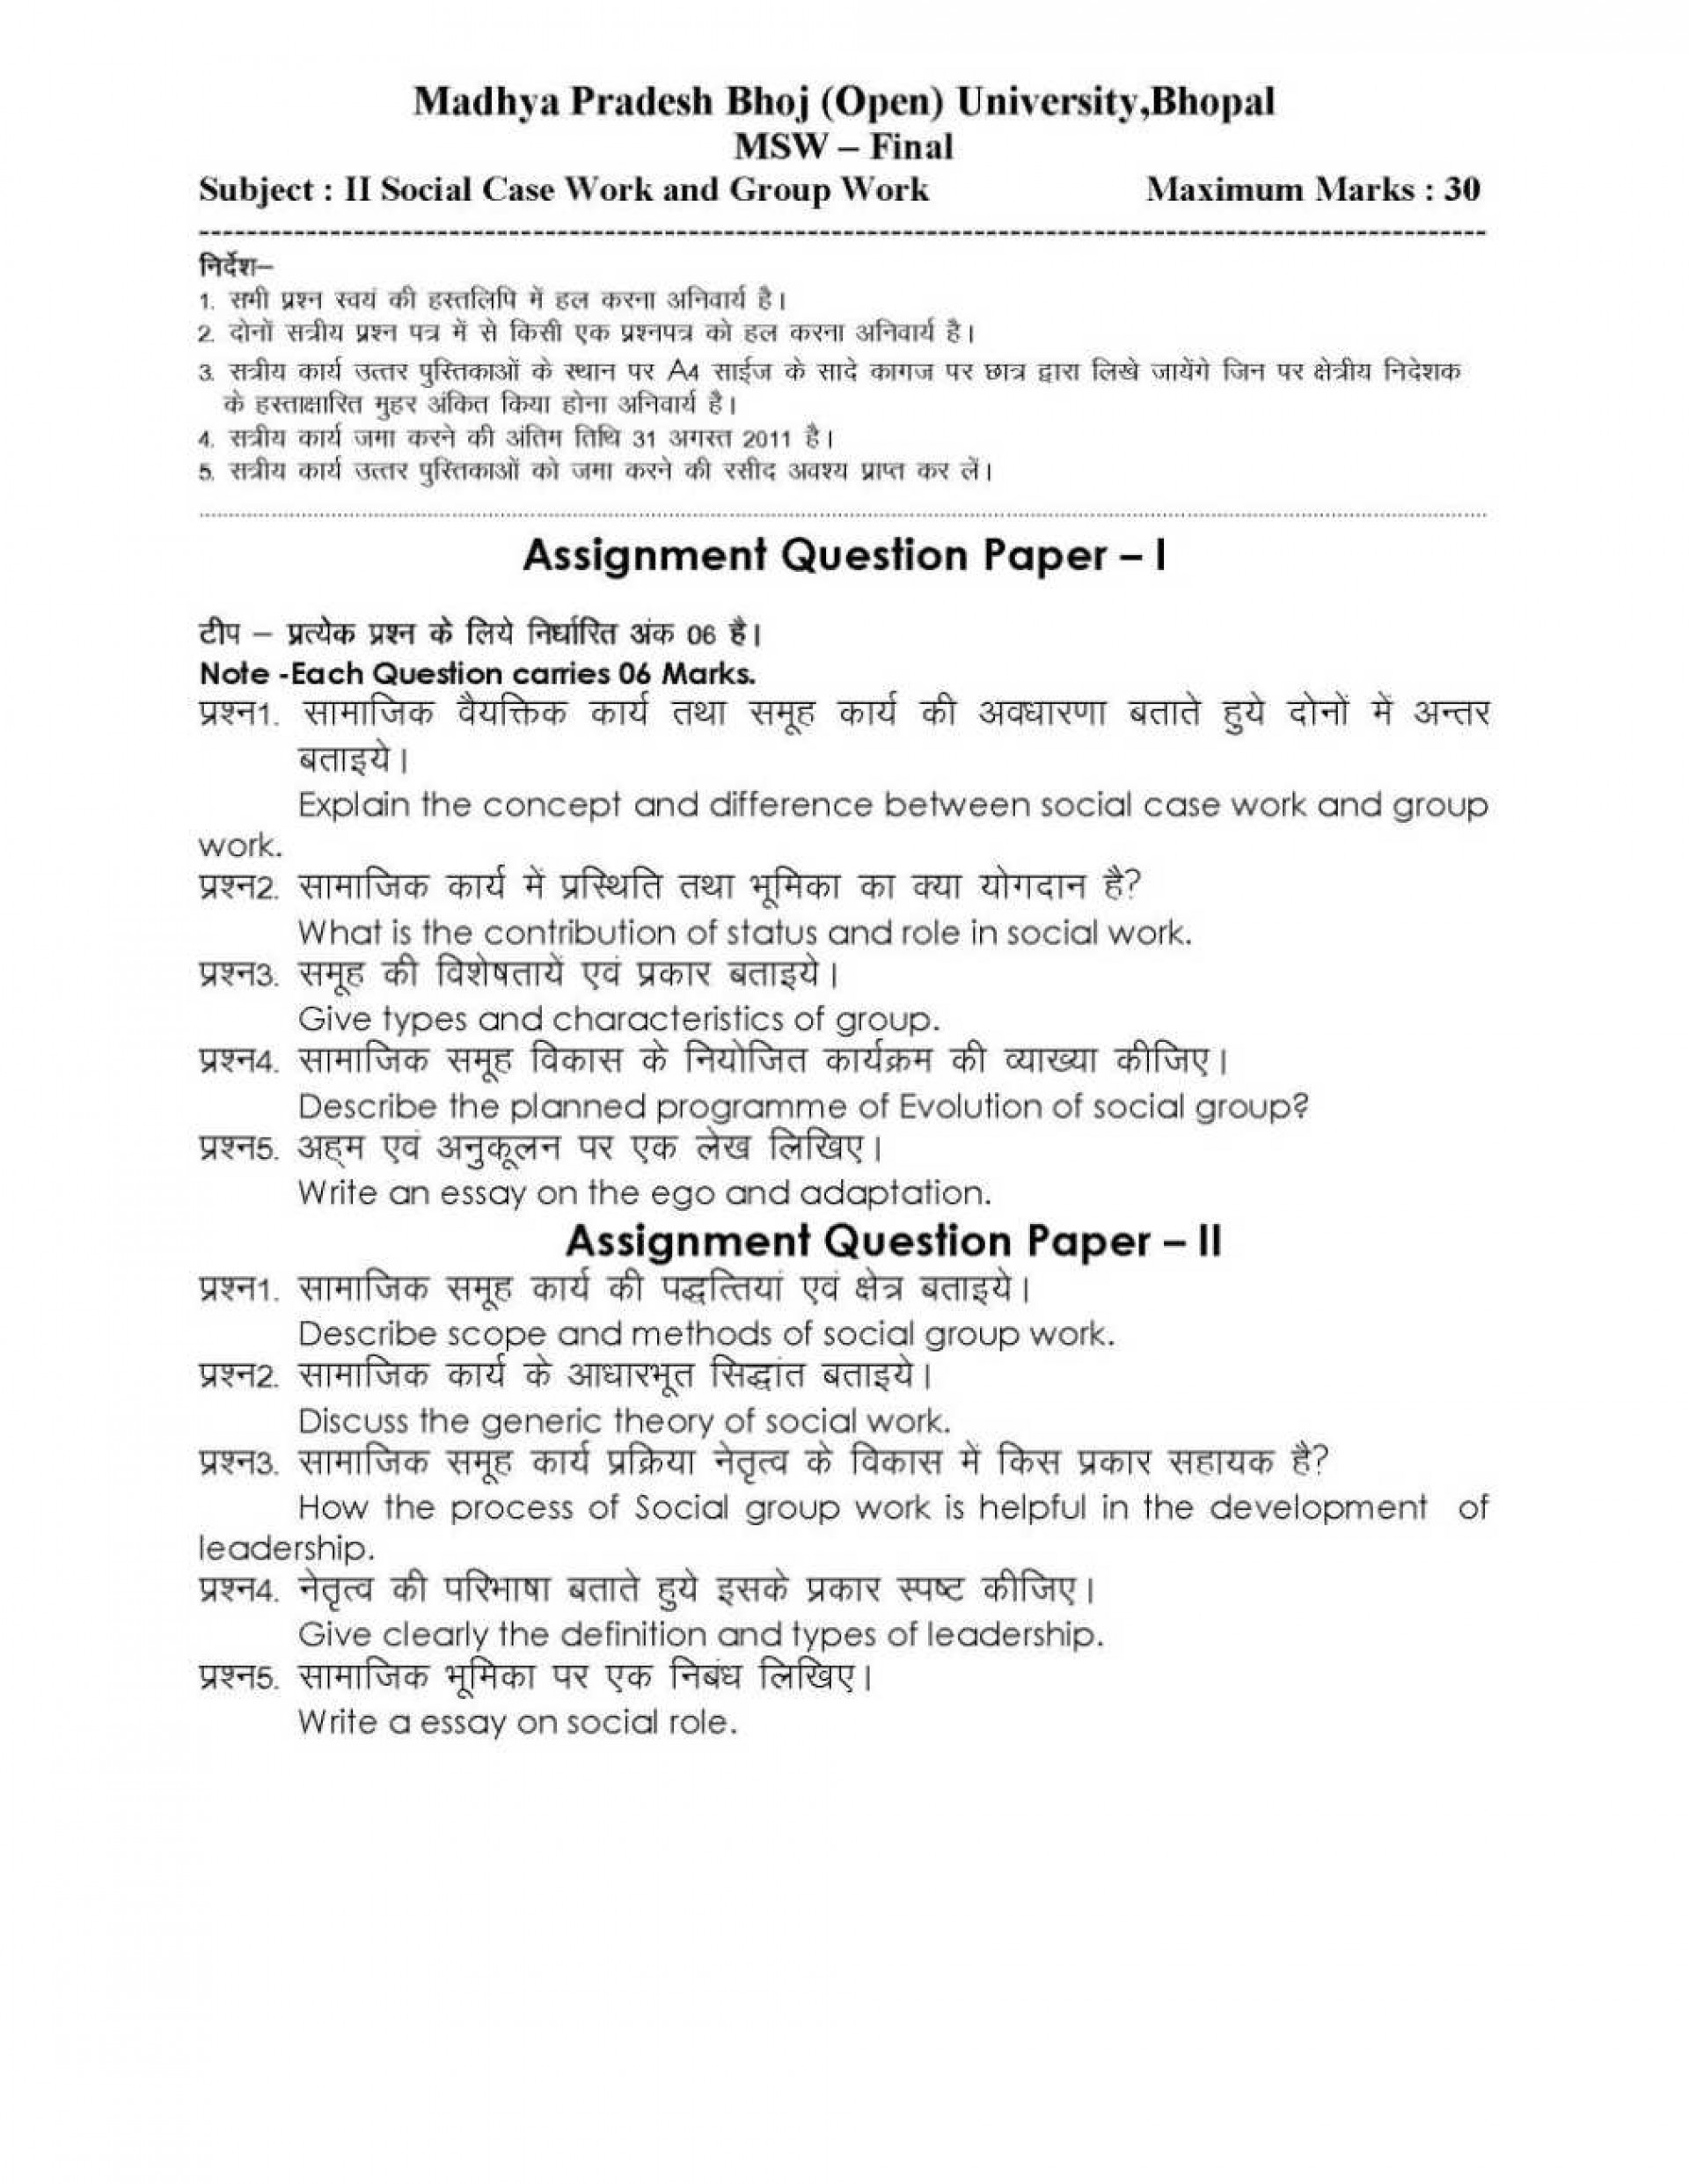 012 Bhoj University Bhopal Msw Definition Essays Surprising Essay Examples Topics Family Pdf 1920